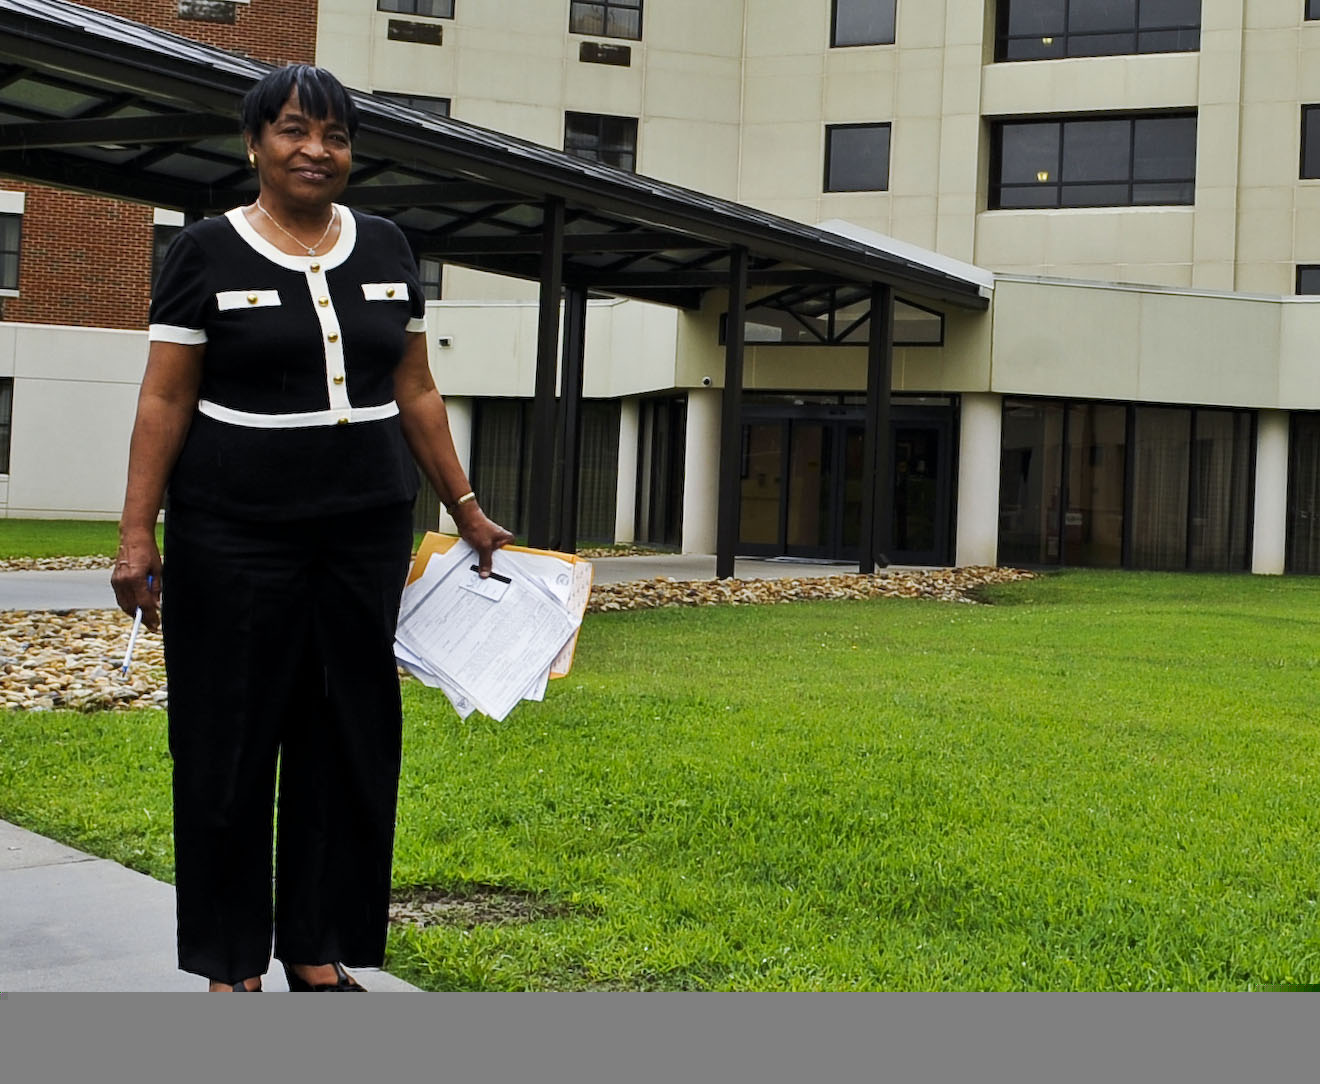 The Mom Of Lodging General Smalls Inn Employee Celebrates 50